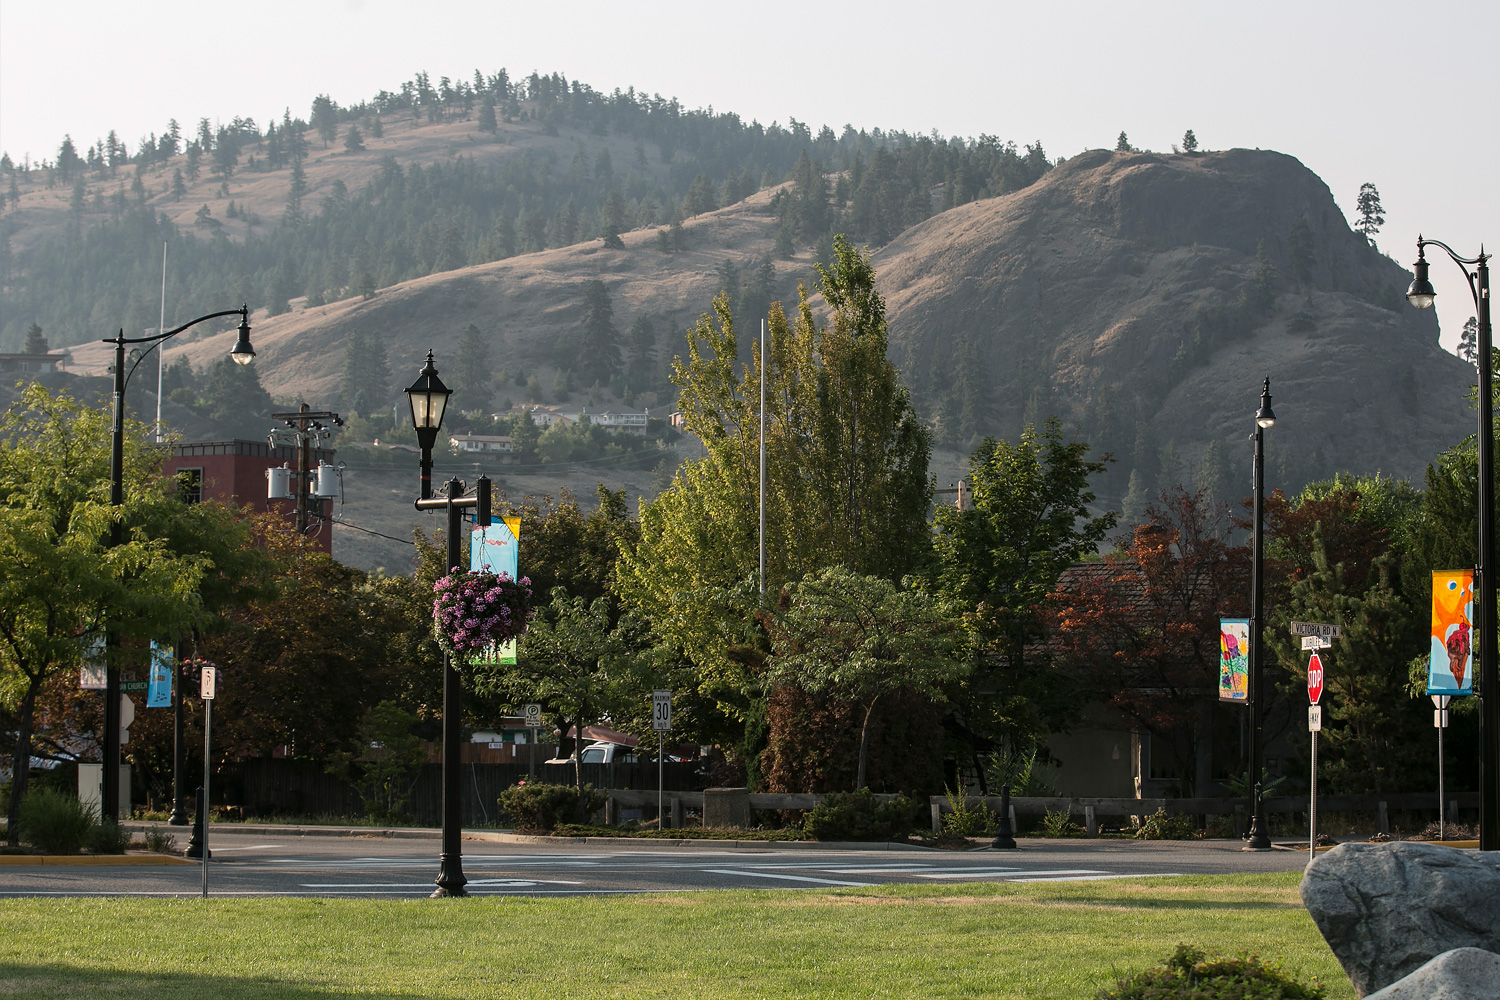 View from Nester's Market in downtown Summerland